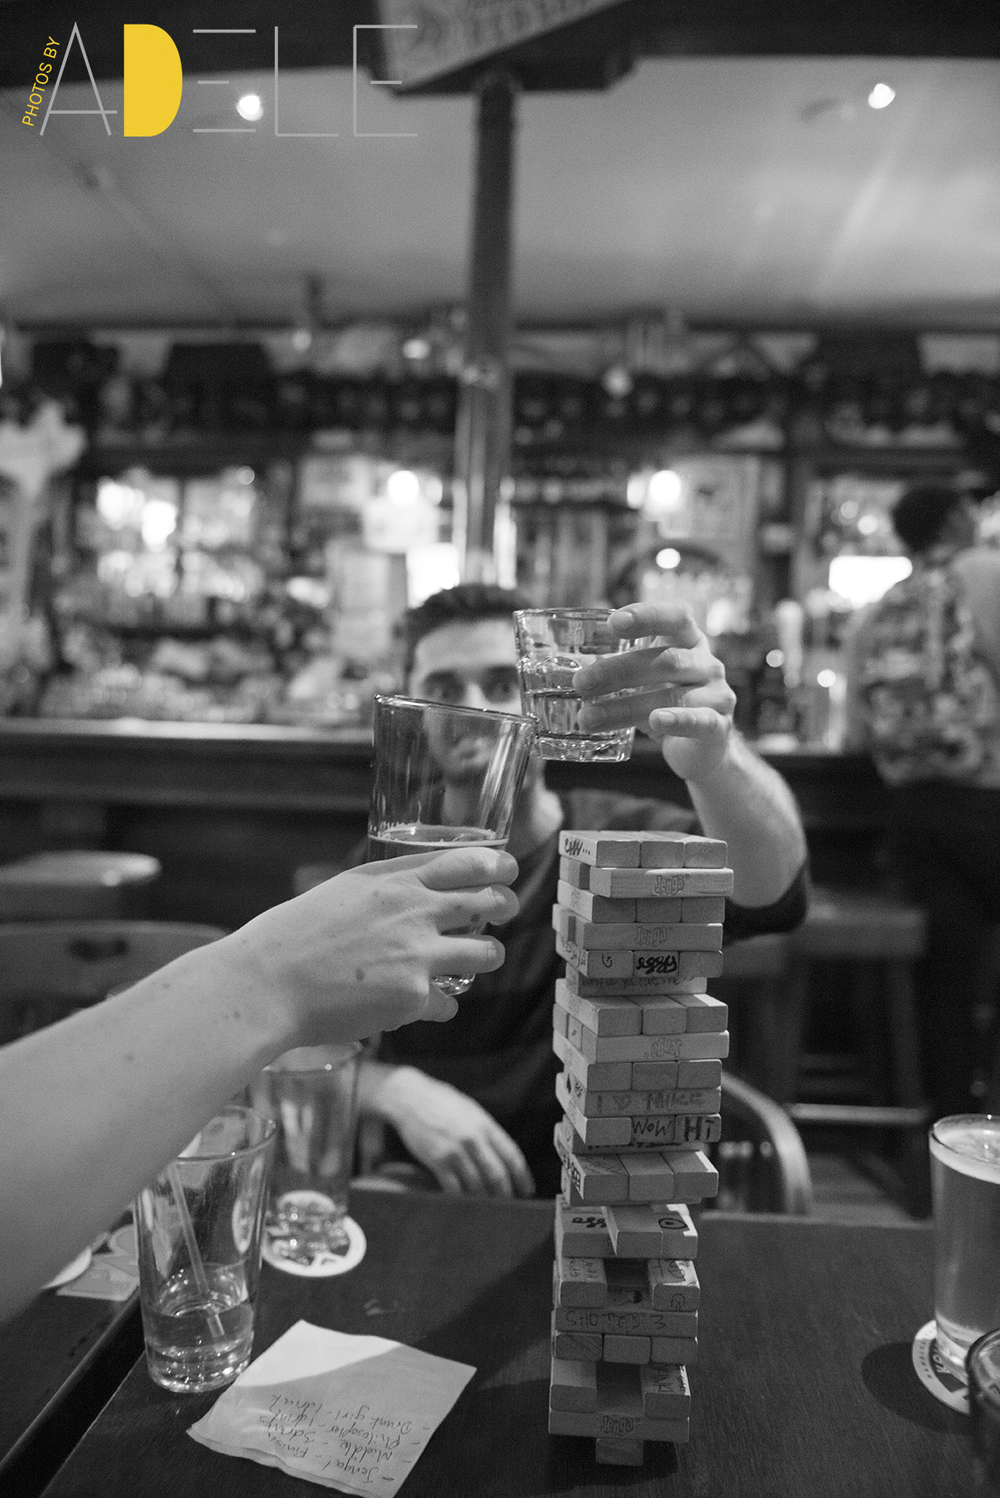 They don't offer food in this pub, just drinks and Jenga.